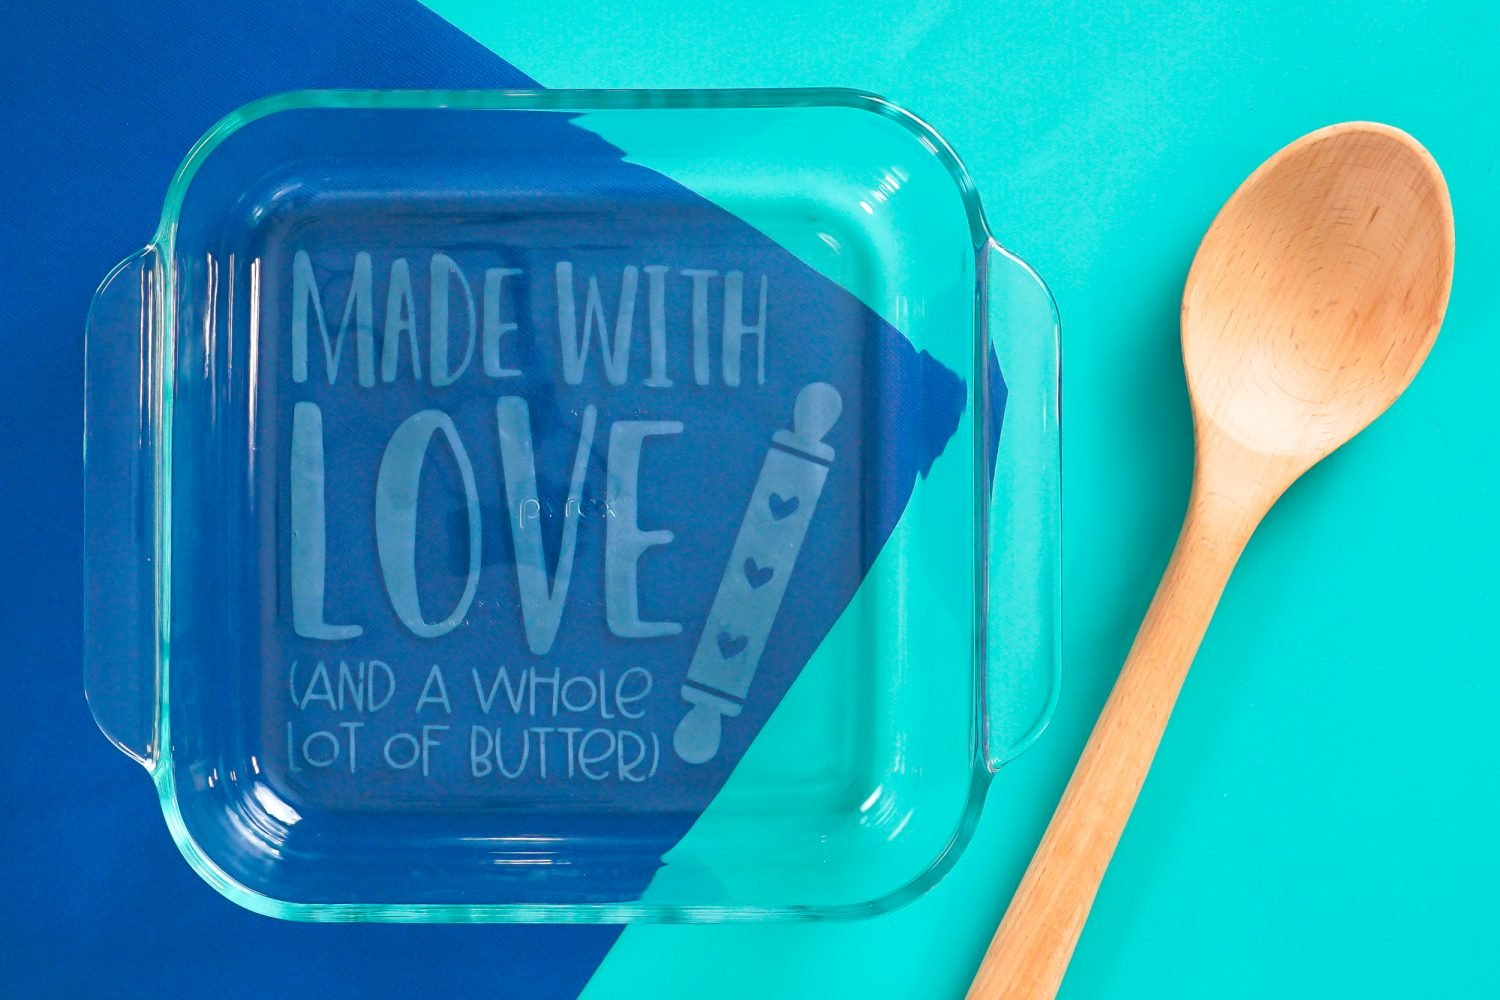 Finished baking dish on blue background with spoon.